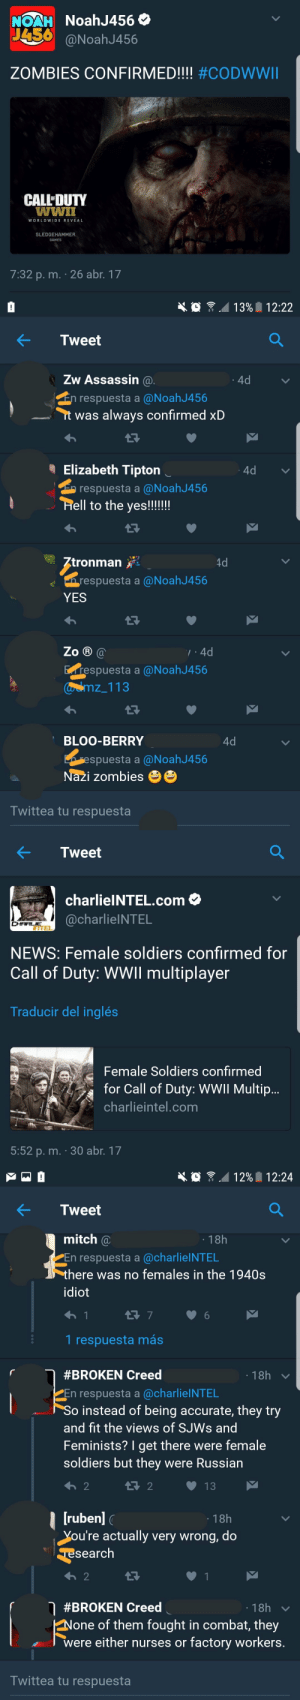 "feniczoroark:  mwg-7:  eddierichtofens:   spainonymous: Call of Male chouvinist Yeah, the most unrealistic thing about Call of Duty is female soldiers.   women were invented in 1950    ""None of them fought in combat""Lets see where thats wrong. I'll start. 588th Night Bomber regiment, ""The night Witches"", Russia @randomnightlord    Many Russian Sniper were womenAlso French Resistance: NoahJ456 O  NOAH  J456  @NoahJ456  ZOMBIES CONFIRMED!!!! #CODWWII  CALL'DUTY  wwiI  WORLDWIDE REVEAL  SLEDGEHAMMER  GAMES  7:32 p. m. · 26 abr. 17   13% 12:22  Tweet  Zw Assassin @.  4d  En respuesta a @NoahJ456  it was always confirmed xD  I Elizabeth Tipton  4d  E respuesta a @NoahJ456  Hell to the yes!!!!!!  Ztronman  4d  n respuesta a @NoahJ456  YES  Zo ® @  7:4d  Erespuesta a @NoahJ456  Caamz_113  BLOO-BERRY  4d  respuesta a @NoahJ456  Nazi zombies  Twittea tu respuesta   Tweet  charlielNTEL.com O  @charlielNTEL  CHARLIE  ITTEL  NEWS: Female soldiers confirmed for  Call of Duty: WWII multiplayer  Traducir del inglés  Female Soldiers confirmed  for Call of Duty: WWII Multip..  charlieintel.com  5:52 p. m. · 30 abr. 17   12% I 12:24  Tweet  mitch @  · 18h  PEn respuesta a @charlielNTEL  there was no females in the 1940s  idiot  1 respuesta más  · 18h  #BROKEN Creed  En respuesta a @charlielNTEL  So instead of being accurate, they try  and fit the views of SJWS and  Feminists? I get there were female  soldiers but they were Russian  t7 2  13  